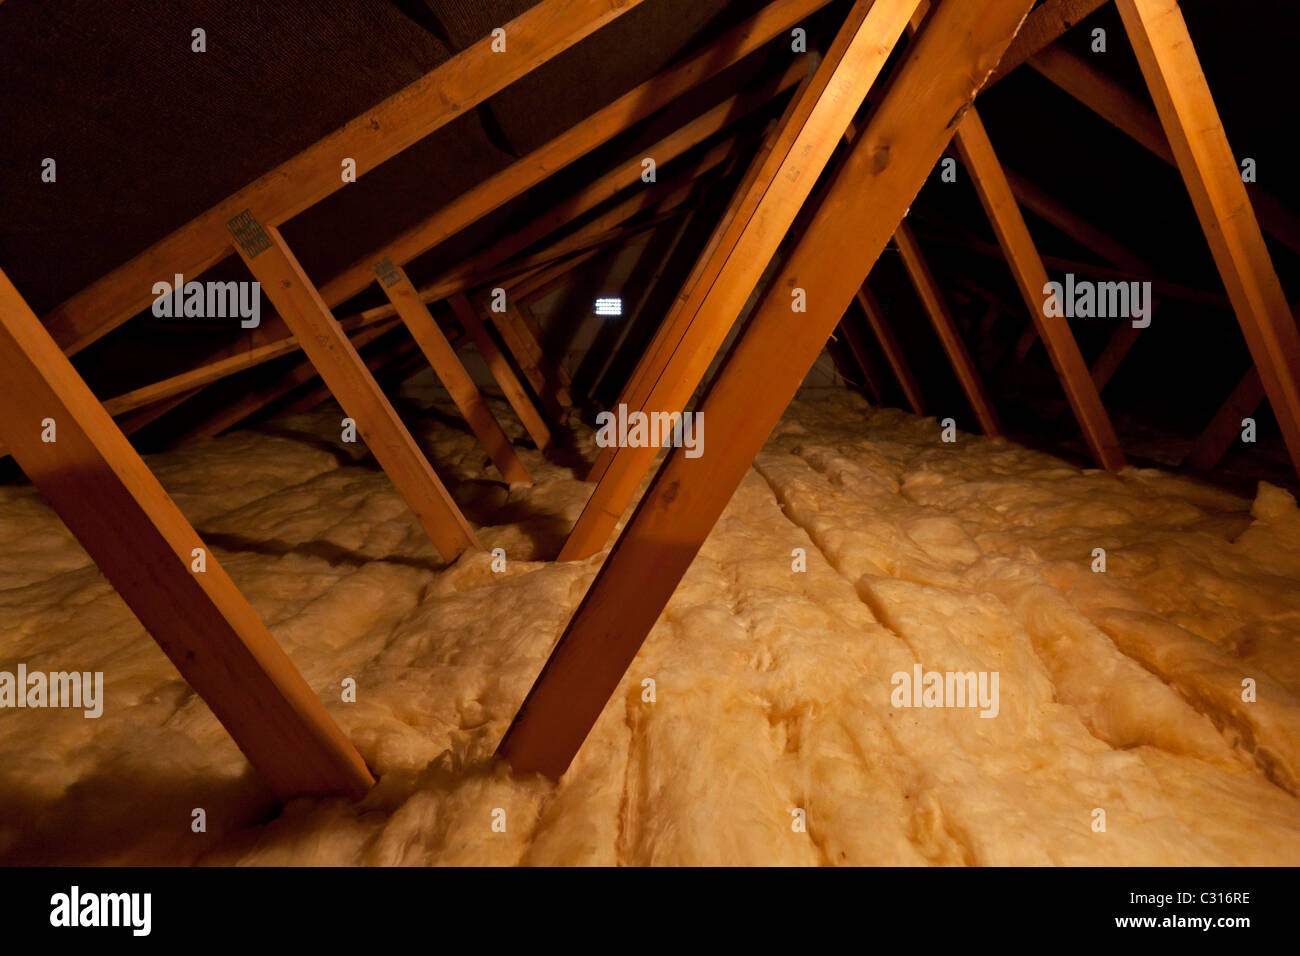 Inside a house loft putting extra insulation to increase warmth and thermal efficiency - Stock Image